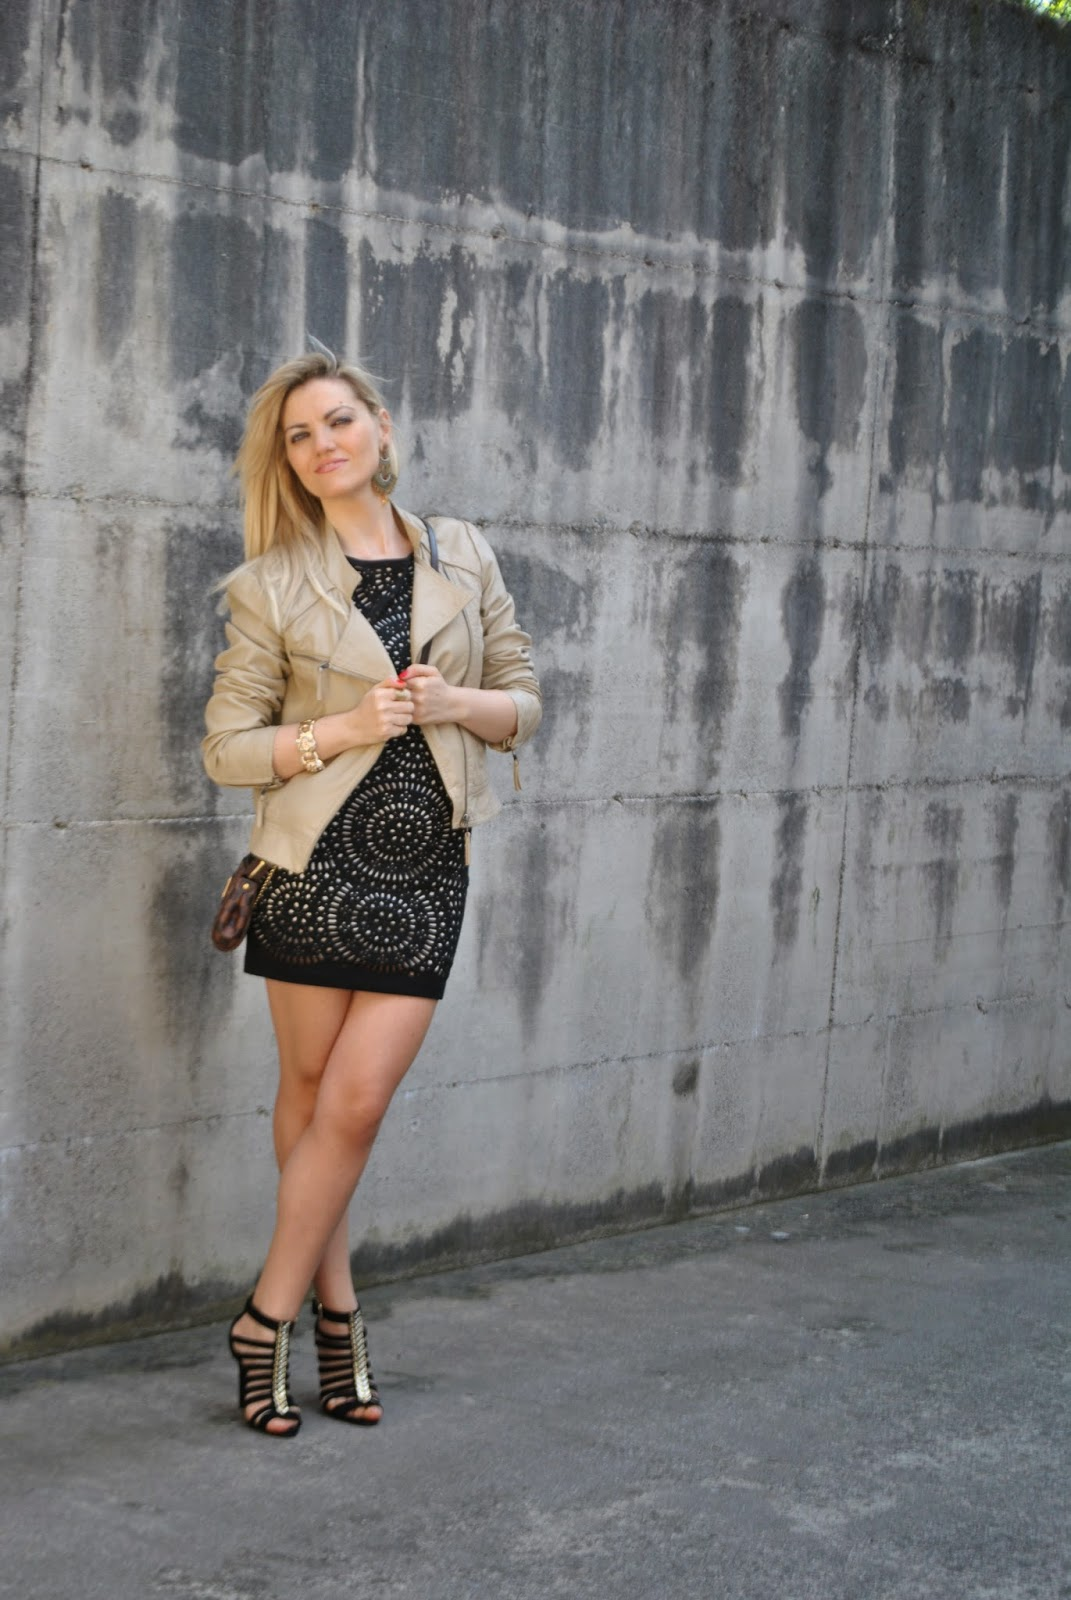 abbinamento beige e nero come abbinare il beige abbinamenti beige mariafelicia magno fashion blogger outfit chiodo in pelle beige outfit abito nero laser cut come abbinare la giacca in pelle mariafelicia magno colorblock by felym mariafelicia magno fashion blogger outfit nero outfit beige come abbinare il beige abito laser cut sandali neri e dorati schutz borsa louis vuitton outfit primaverili outfit aprile 2015 outfit per andare a ballare come vestirsi per andare a ballare fashion blogger italiane spring outfit laser cut dress how to wear laser cut dress laser cut dress street style fashion bloggers italy blondie blonde hair blonde girl come abbinare il beige